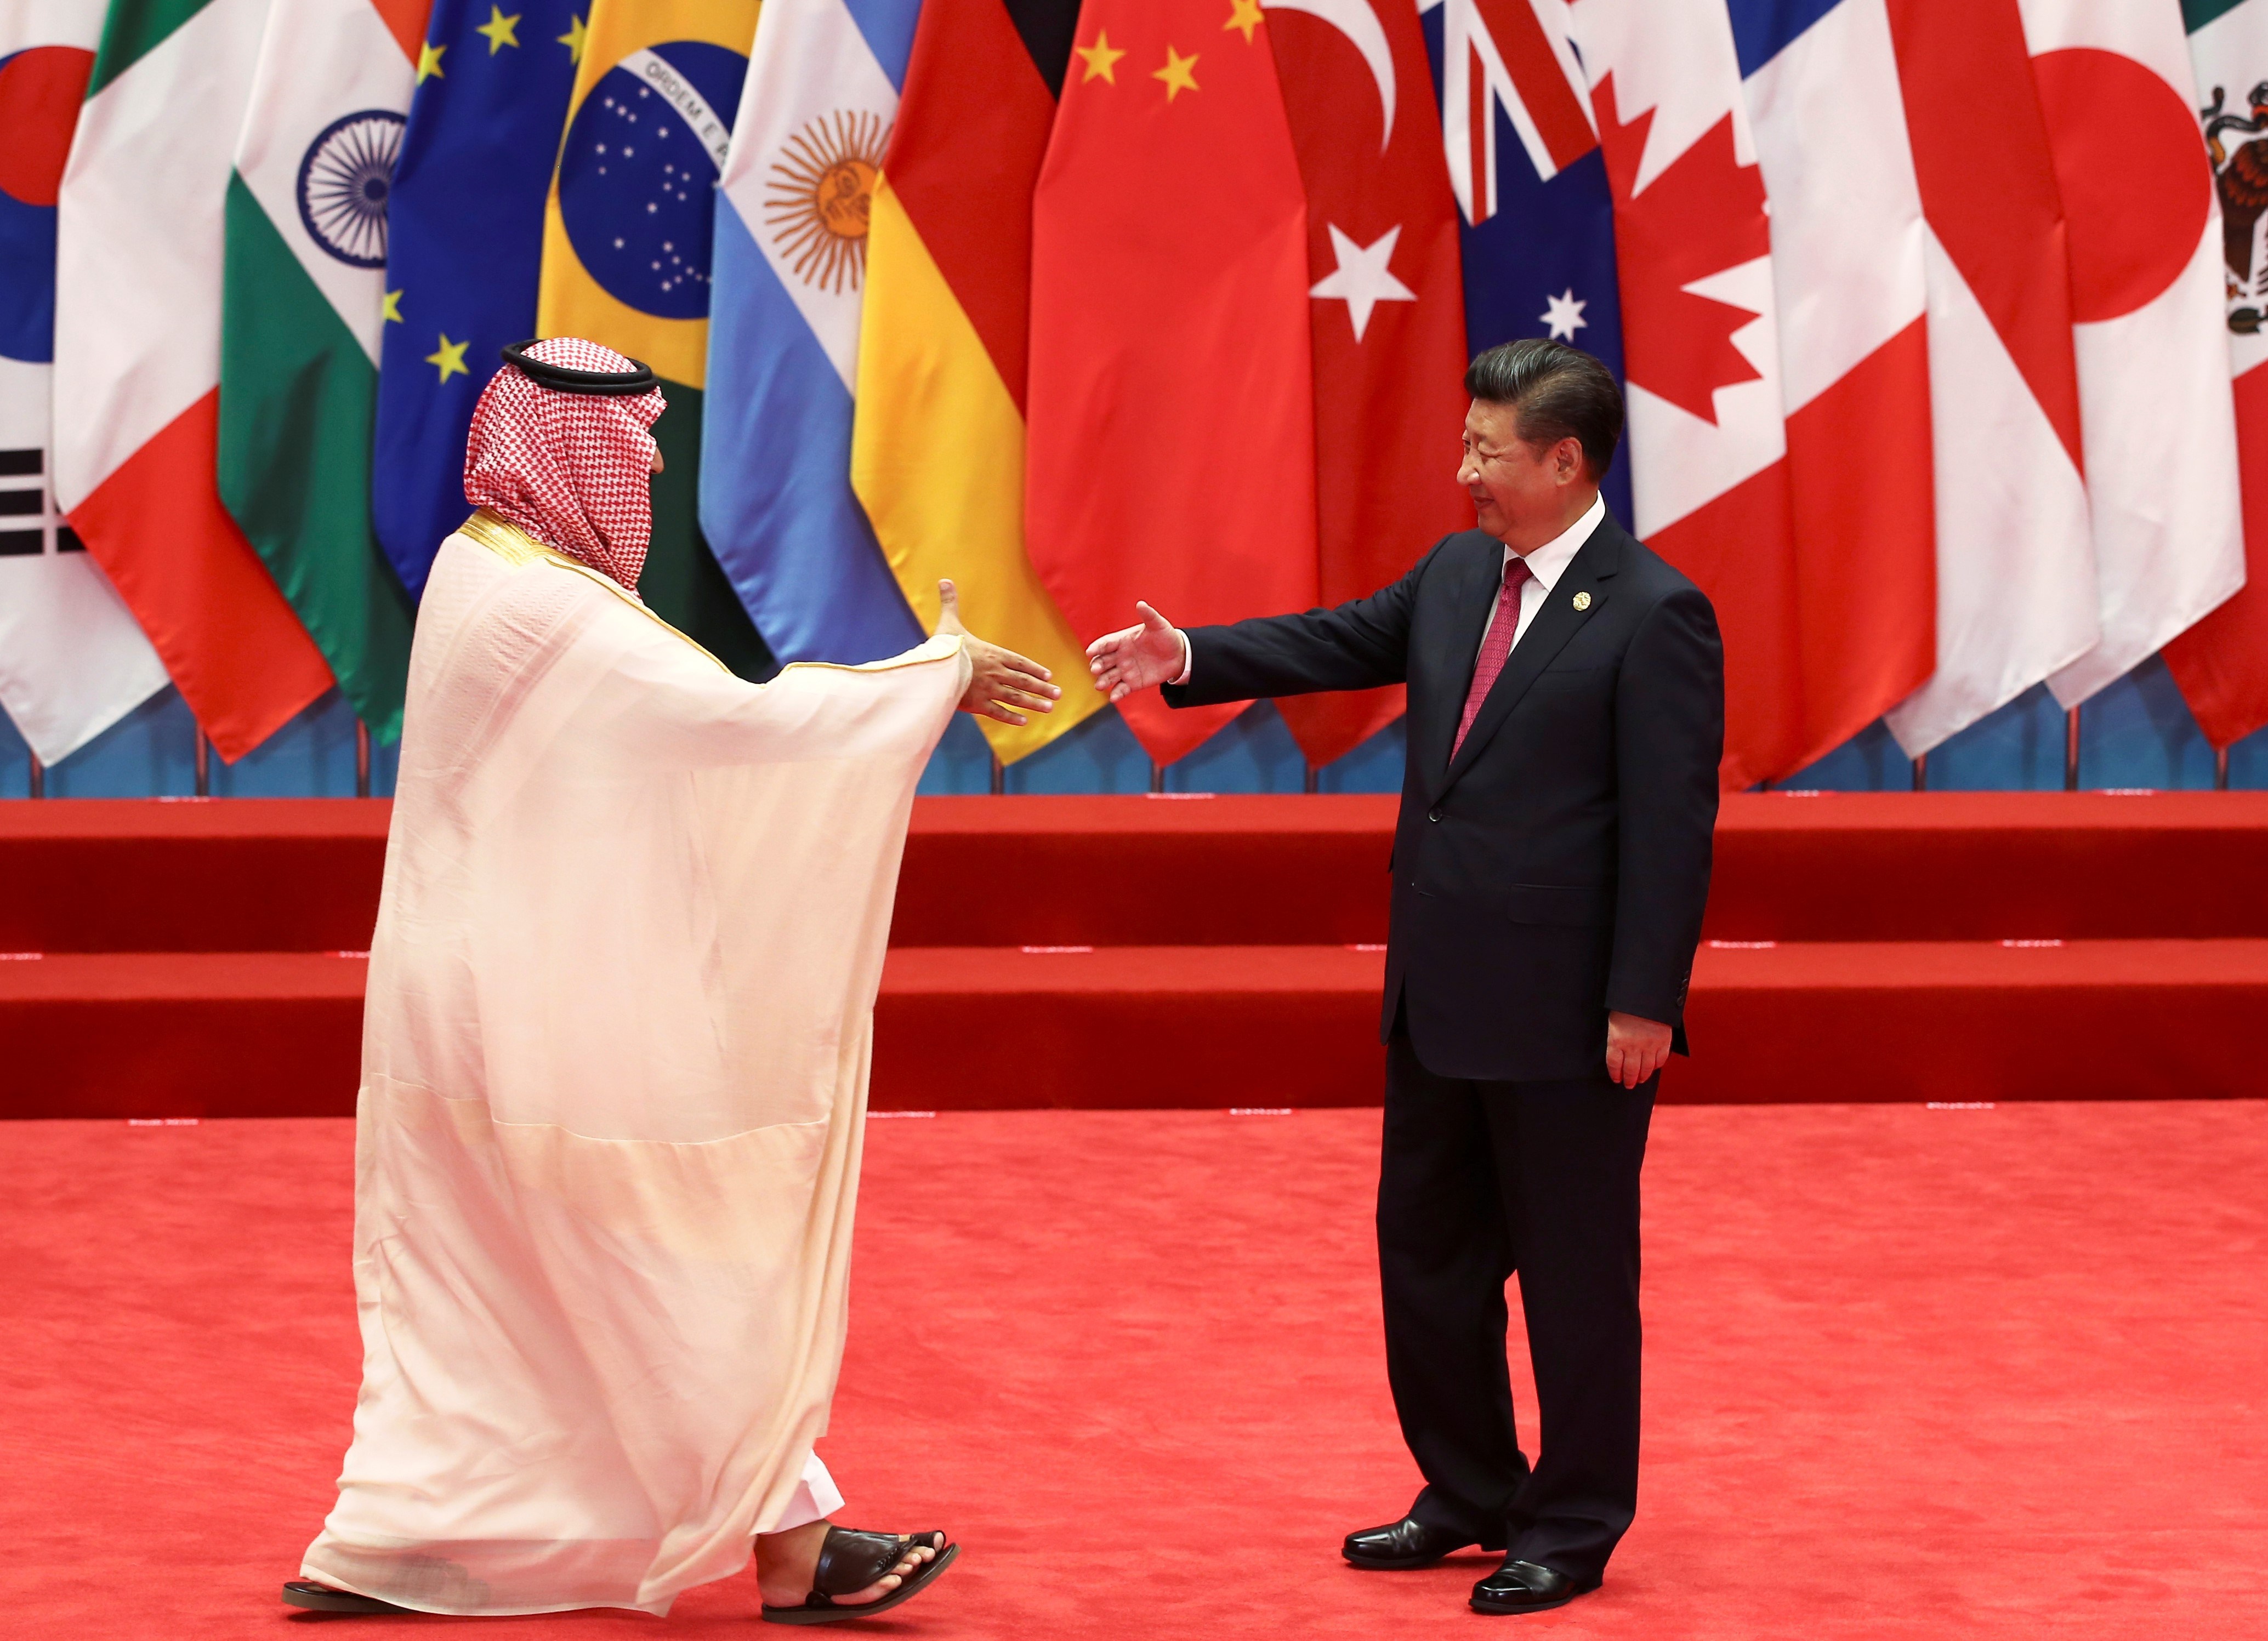 China's President Xi Jinping shakes hands with Crown Prince Mohammed bin Salman during the G20 Summit in Hangzhou, Zhejiang province, China (AFP)